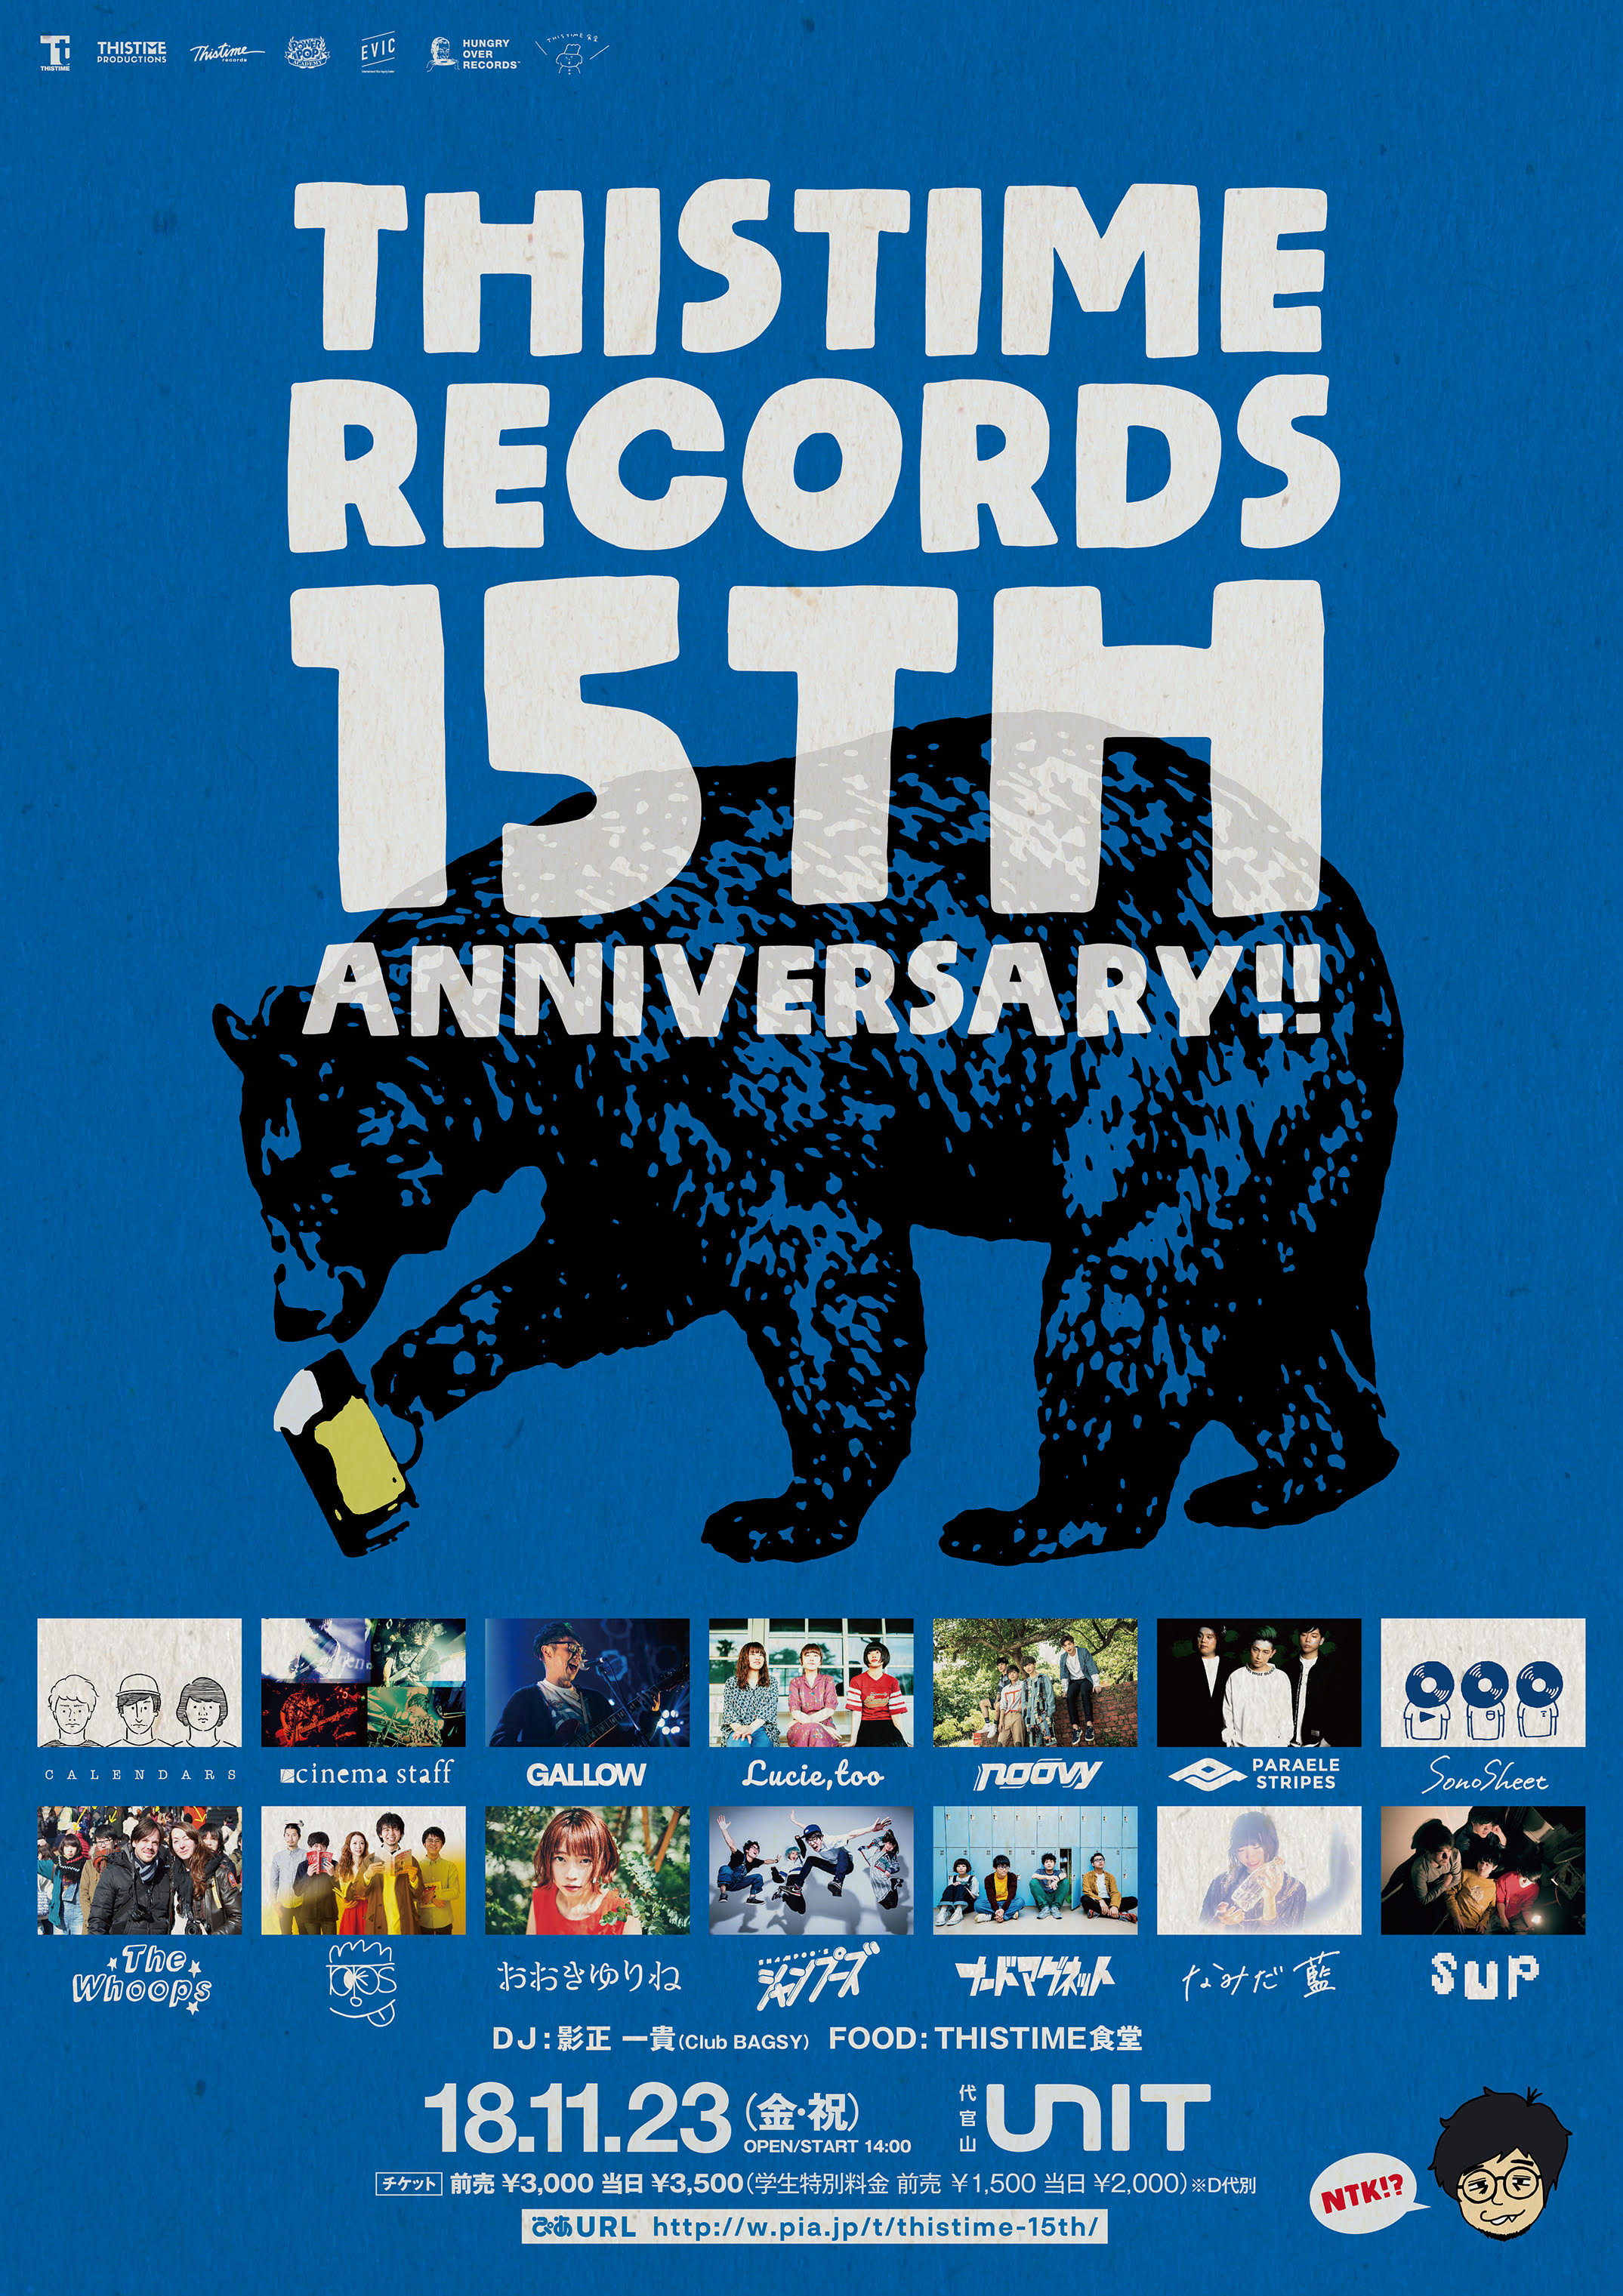 thistime records 15th anniversary タイムテーブル発表